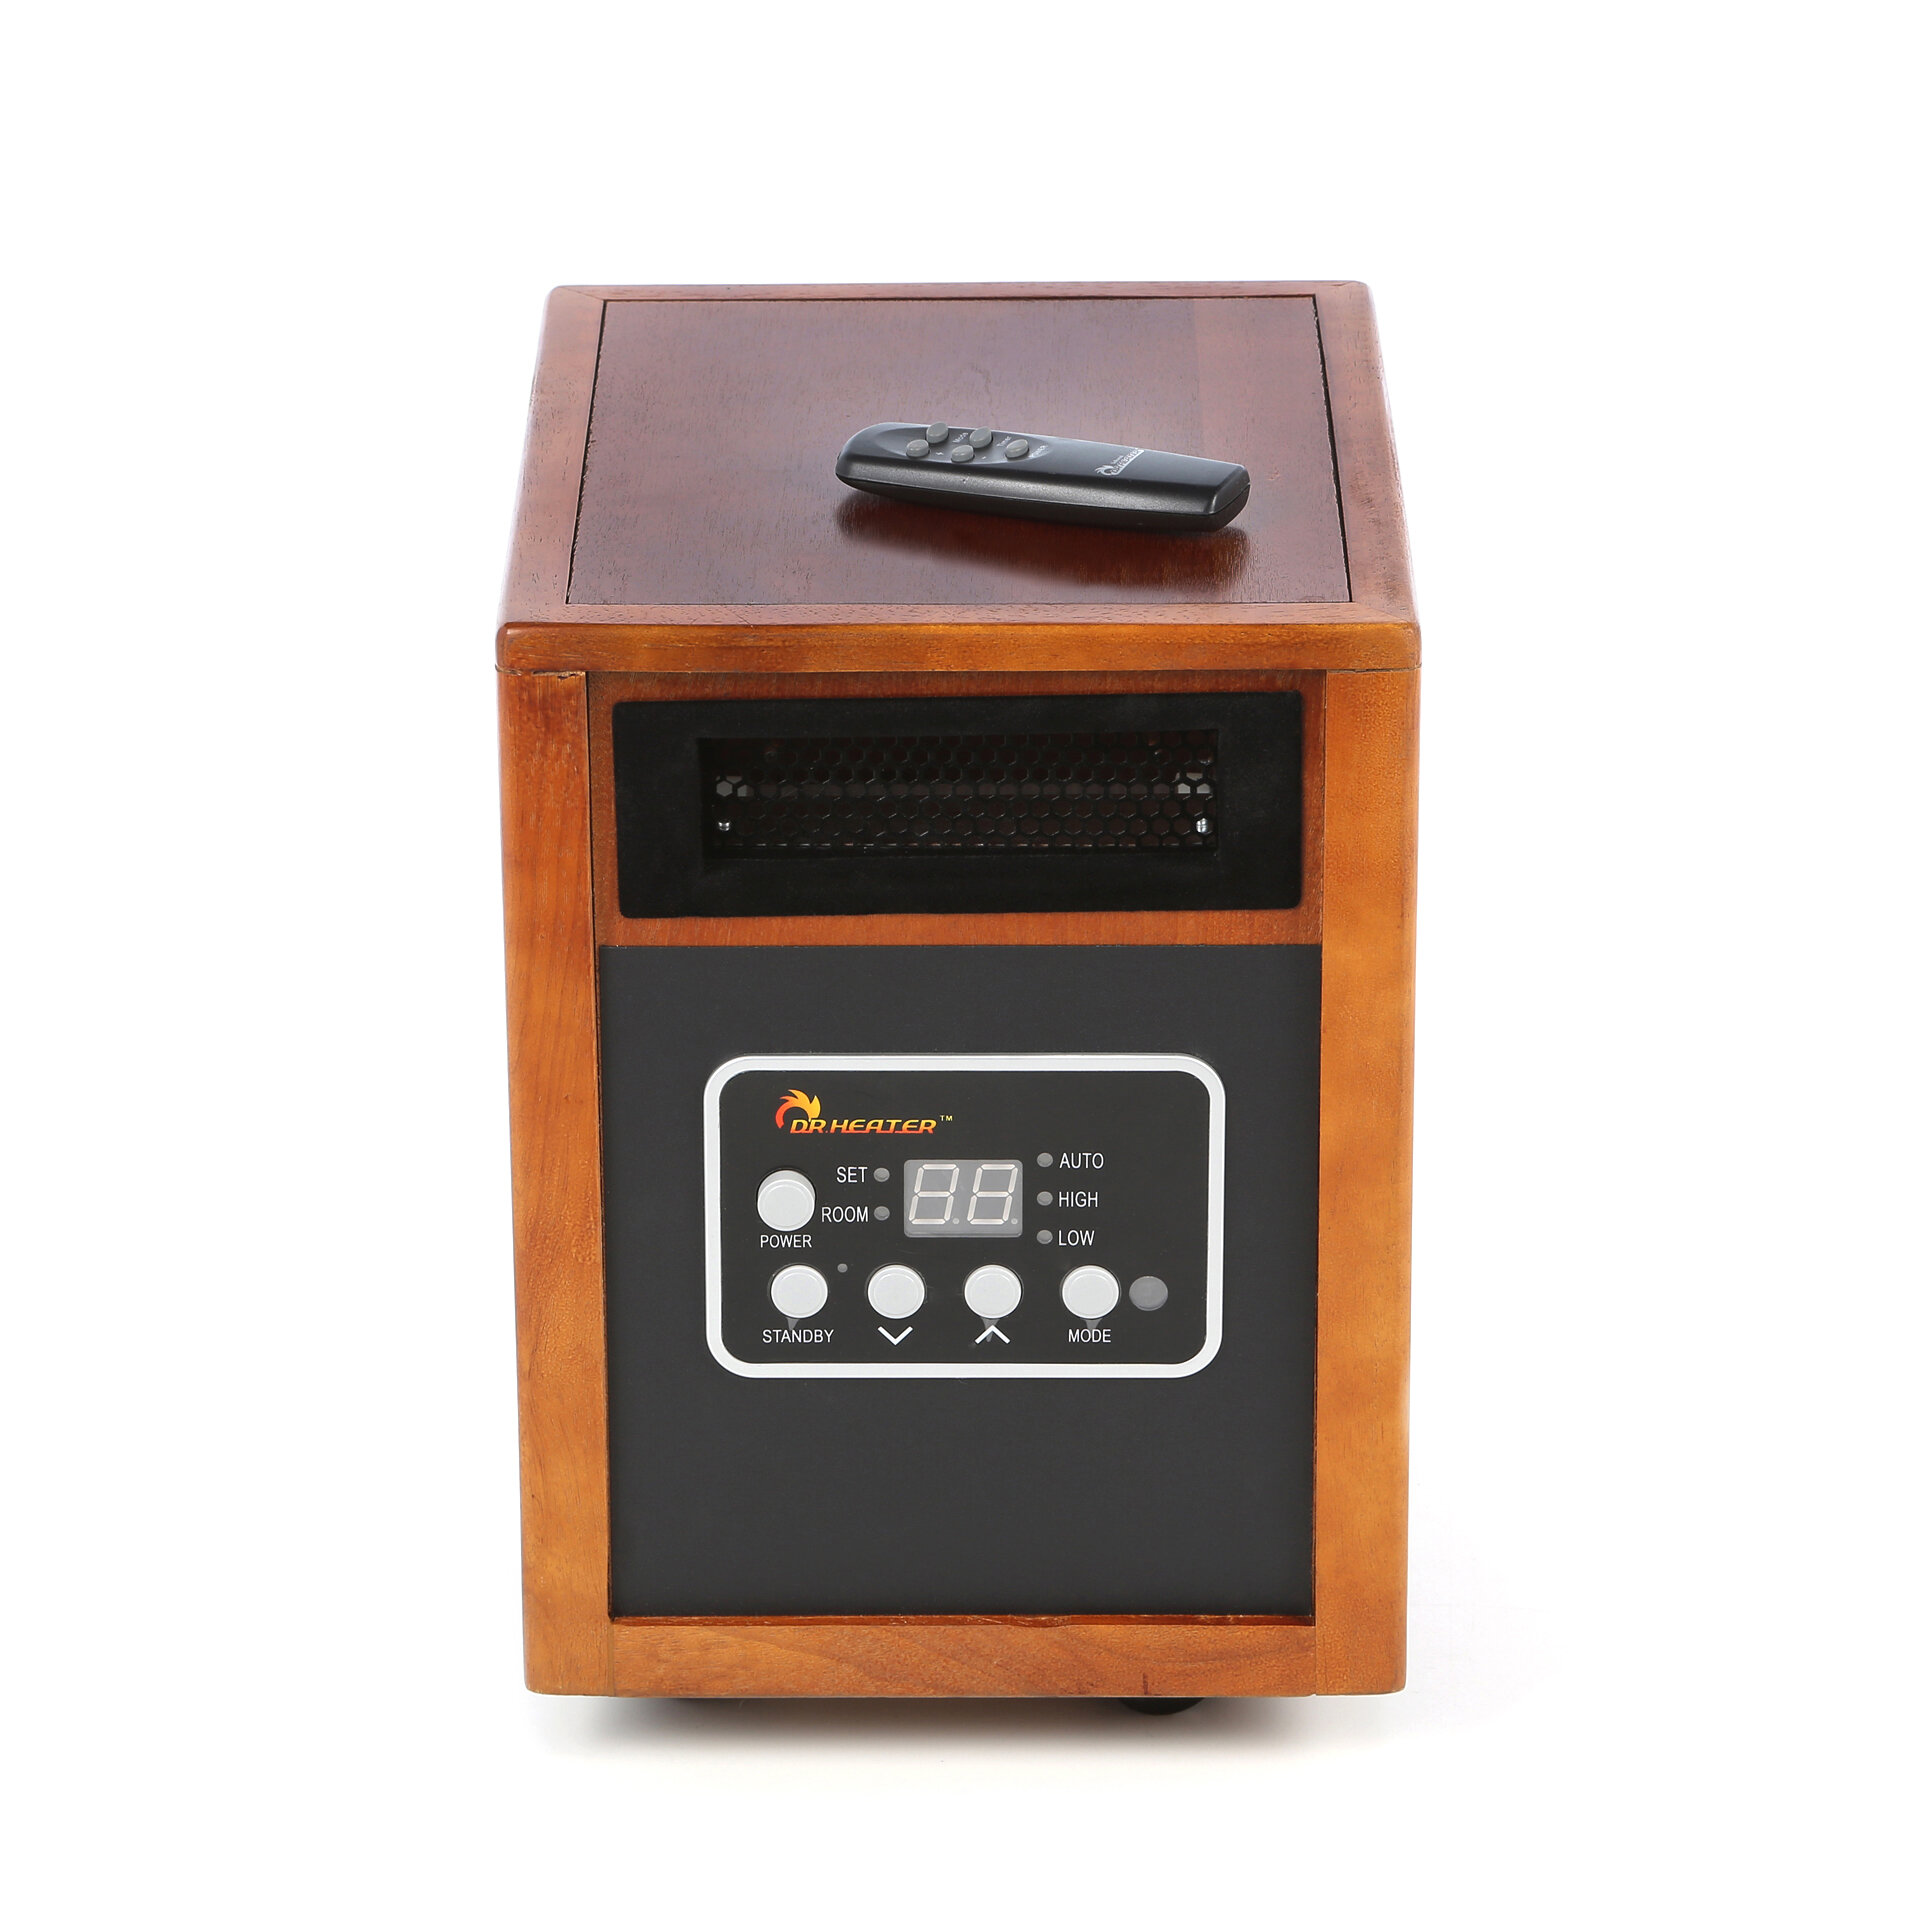 Dr infrared heater 1 500 watt infrared cabinet space Dr infrared heater